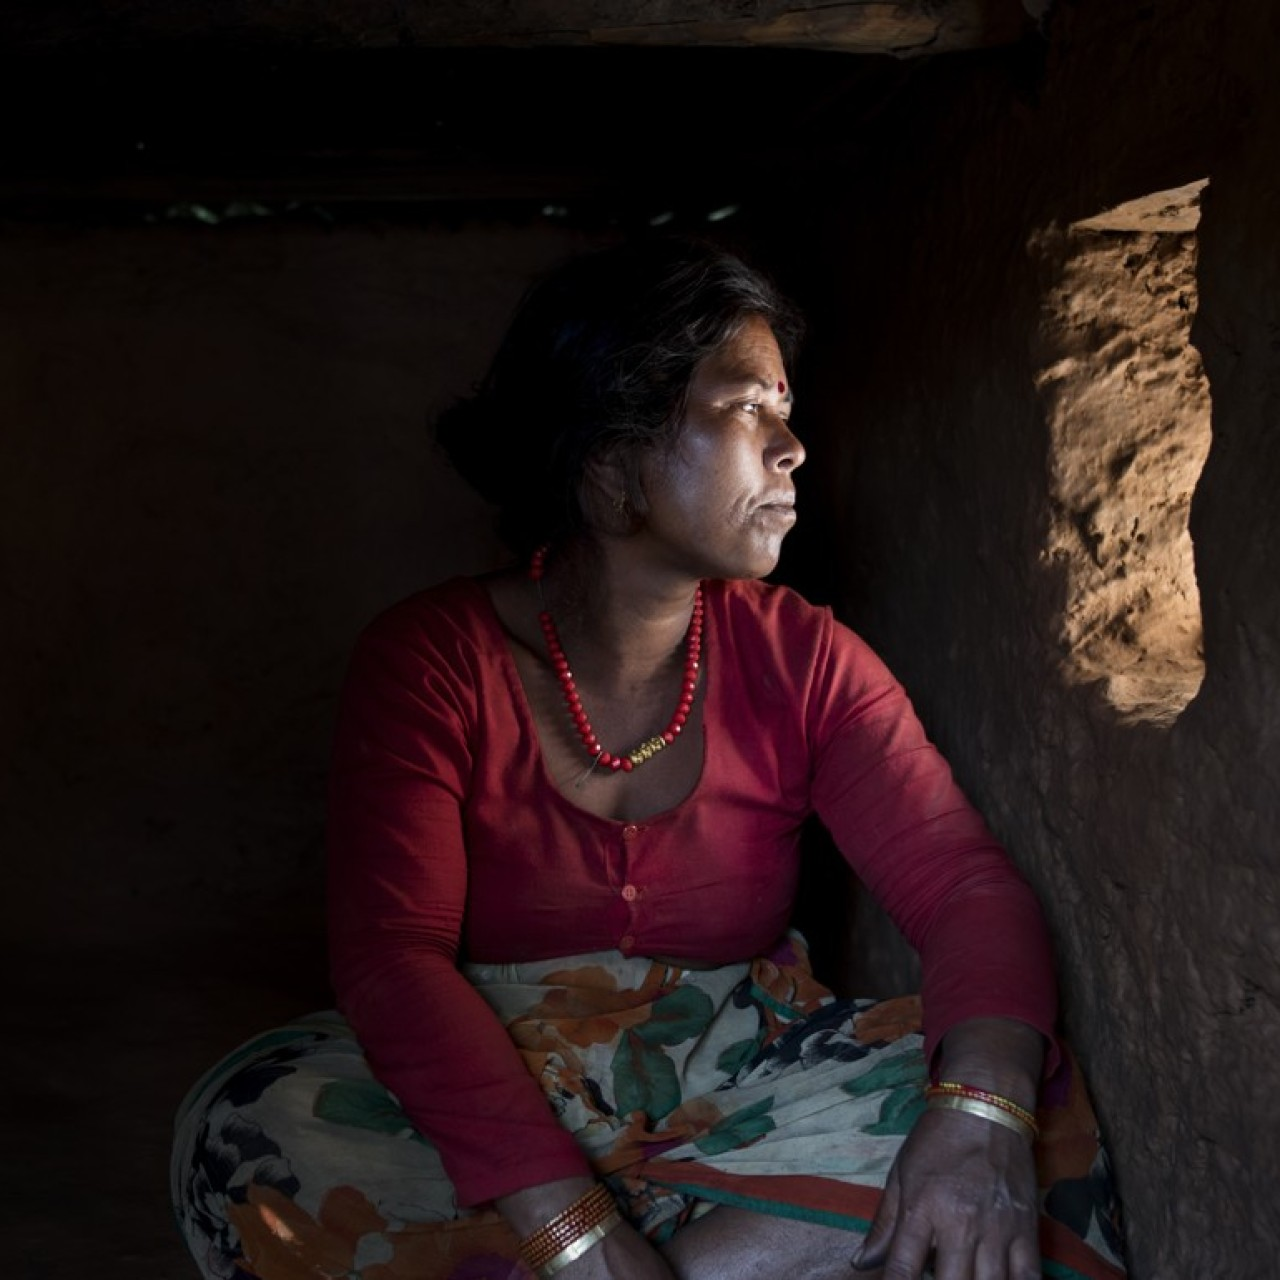 Period shaming in Nepal: new law may finally end practice of